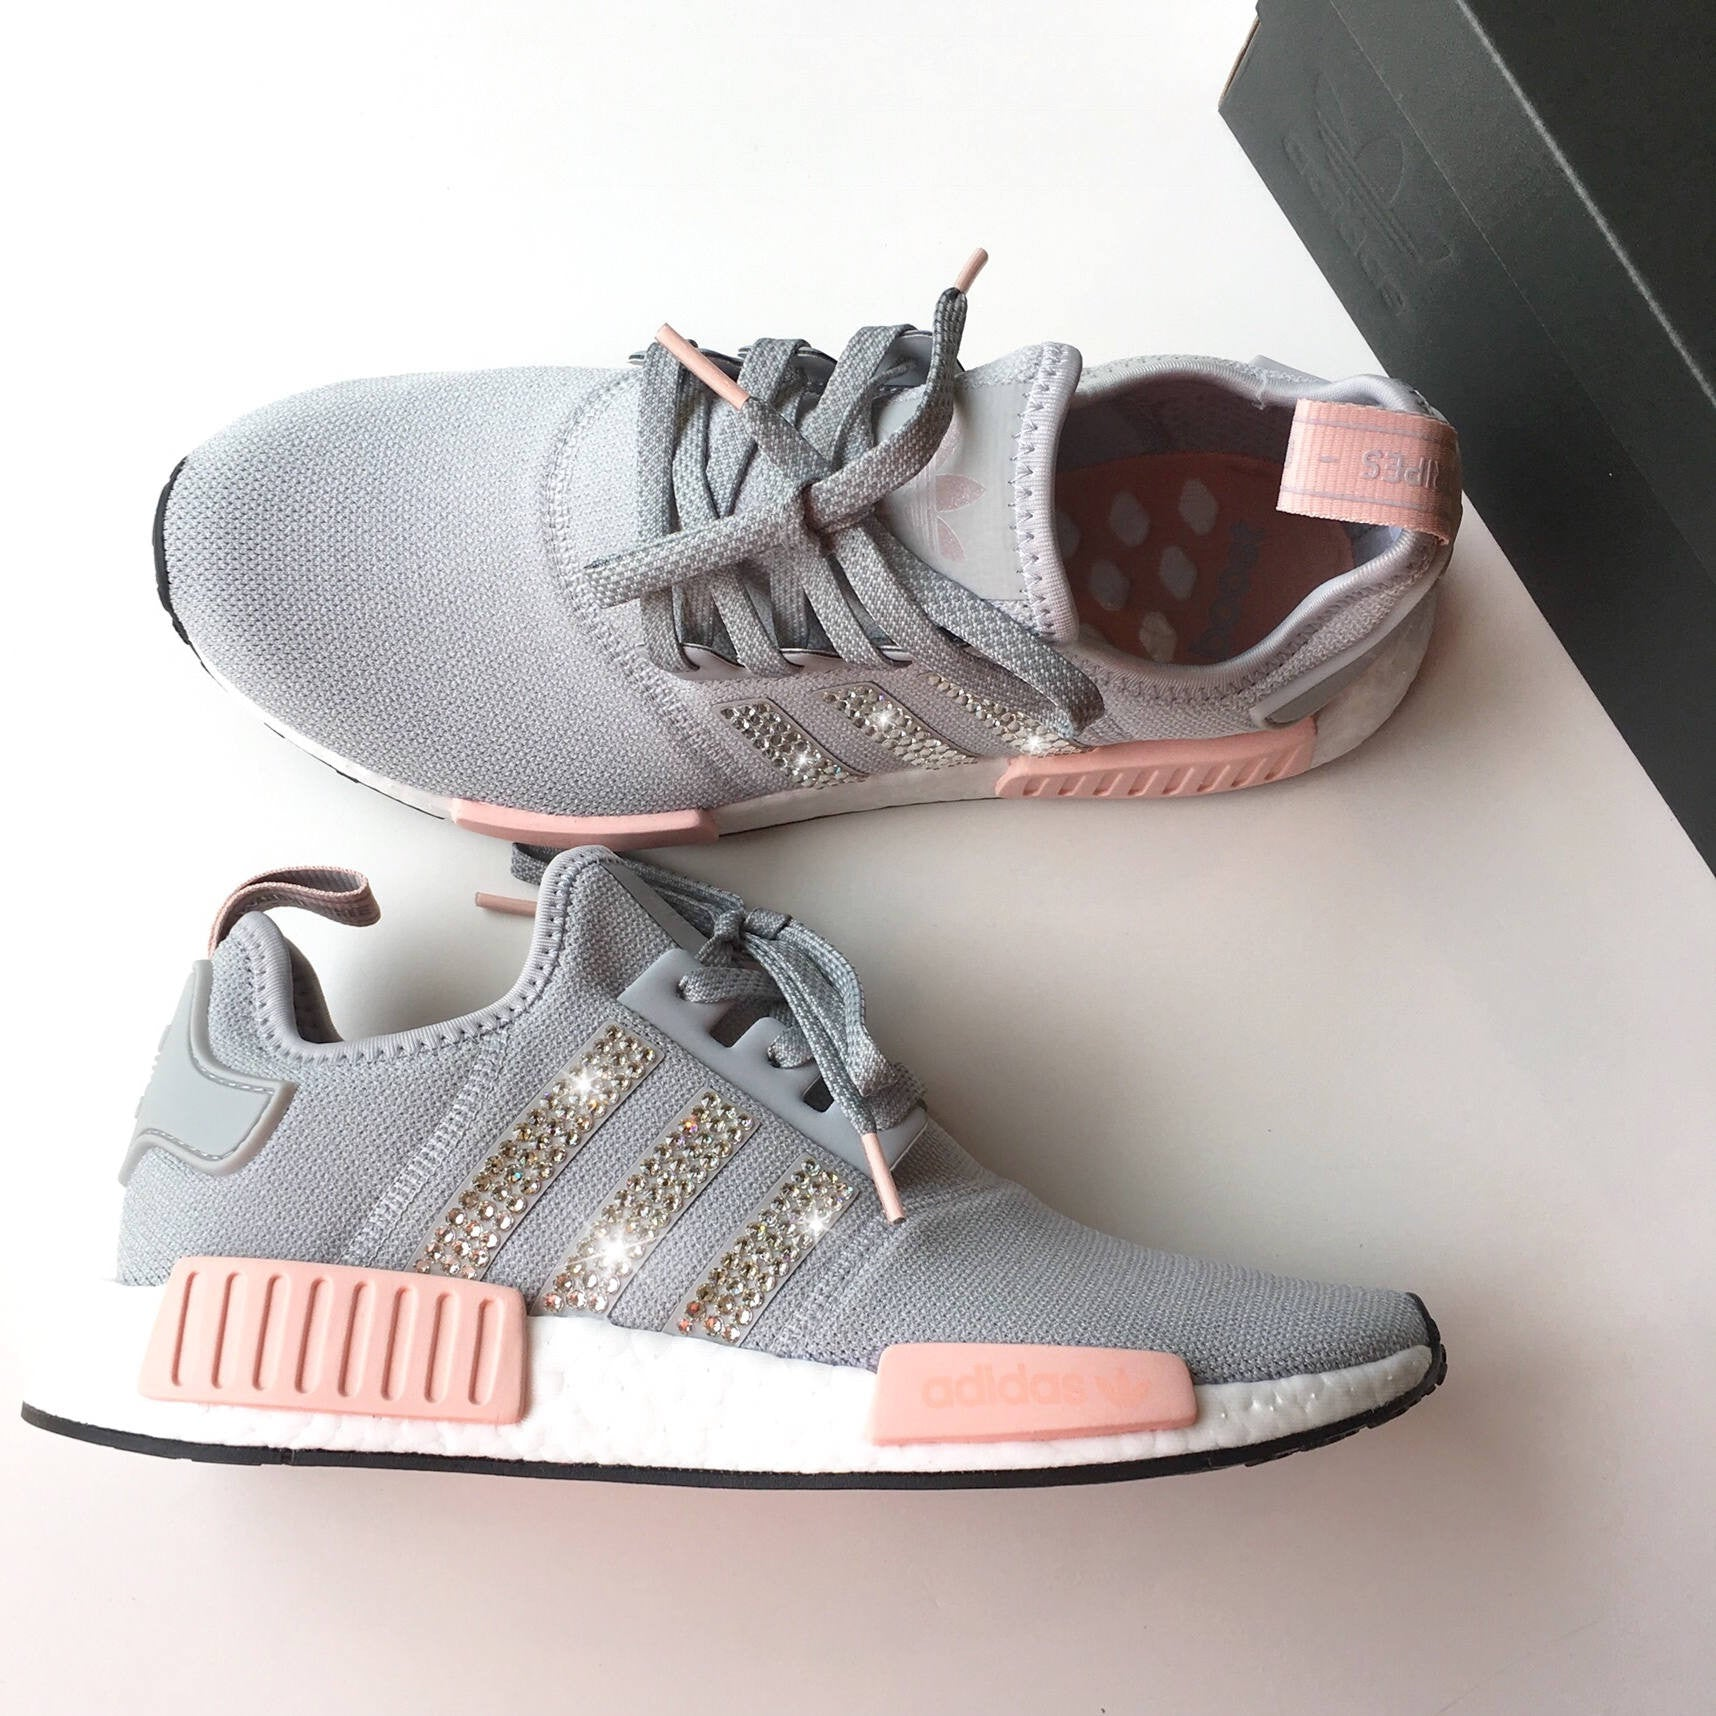 ... NEW Bling Adidas NMD with Swarovski Crystals   Women s Originals NMD R1  Runners Casual Shoes   ... a63a487a7